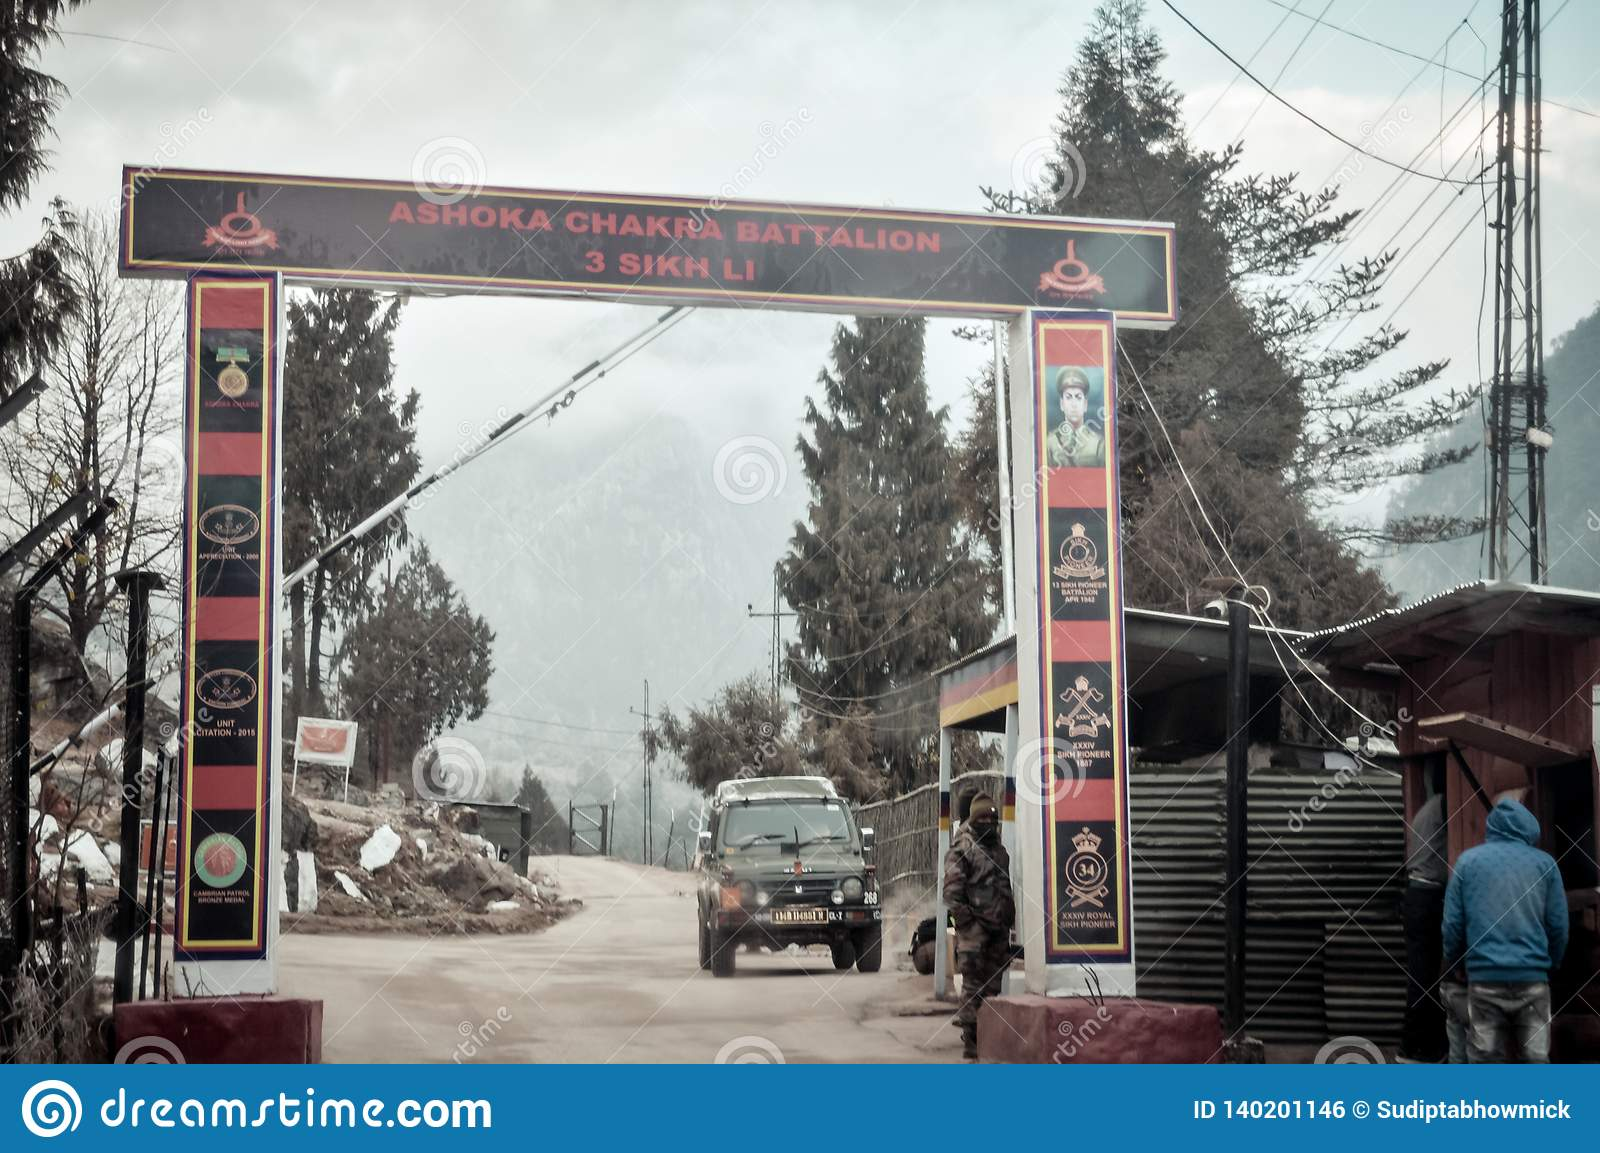 Pulwama, Jammu Srinagar National Highway, India 14 February 2019: Indian post after attacked by vehicle-borne suicide bomber by